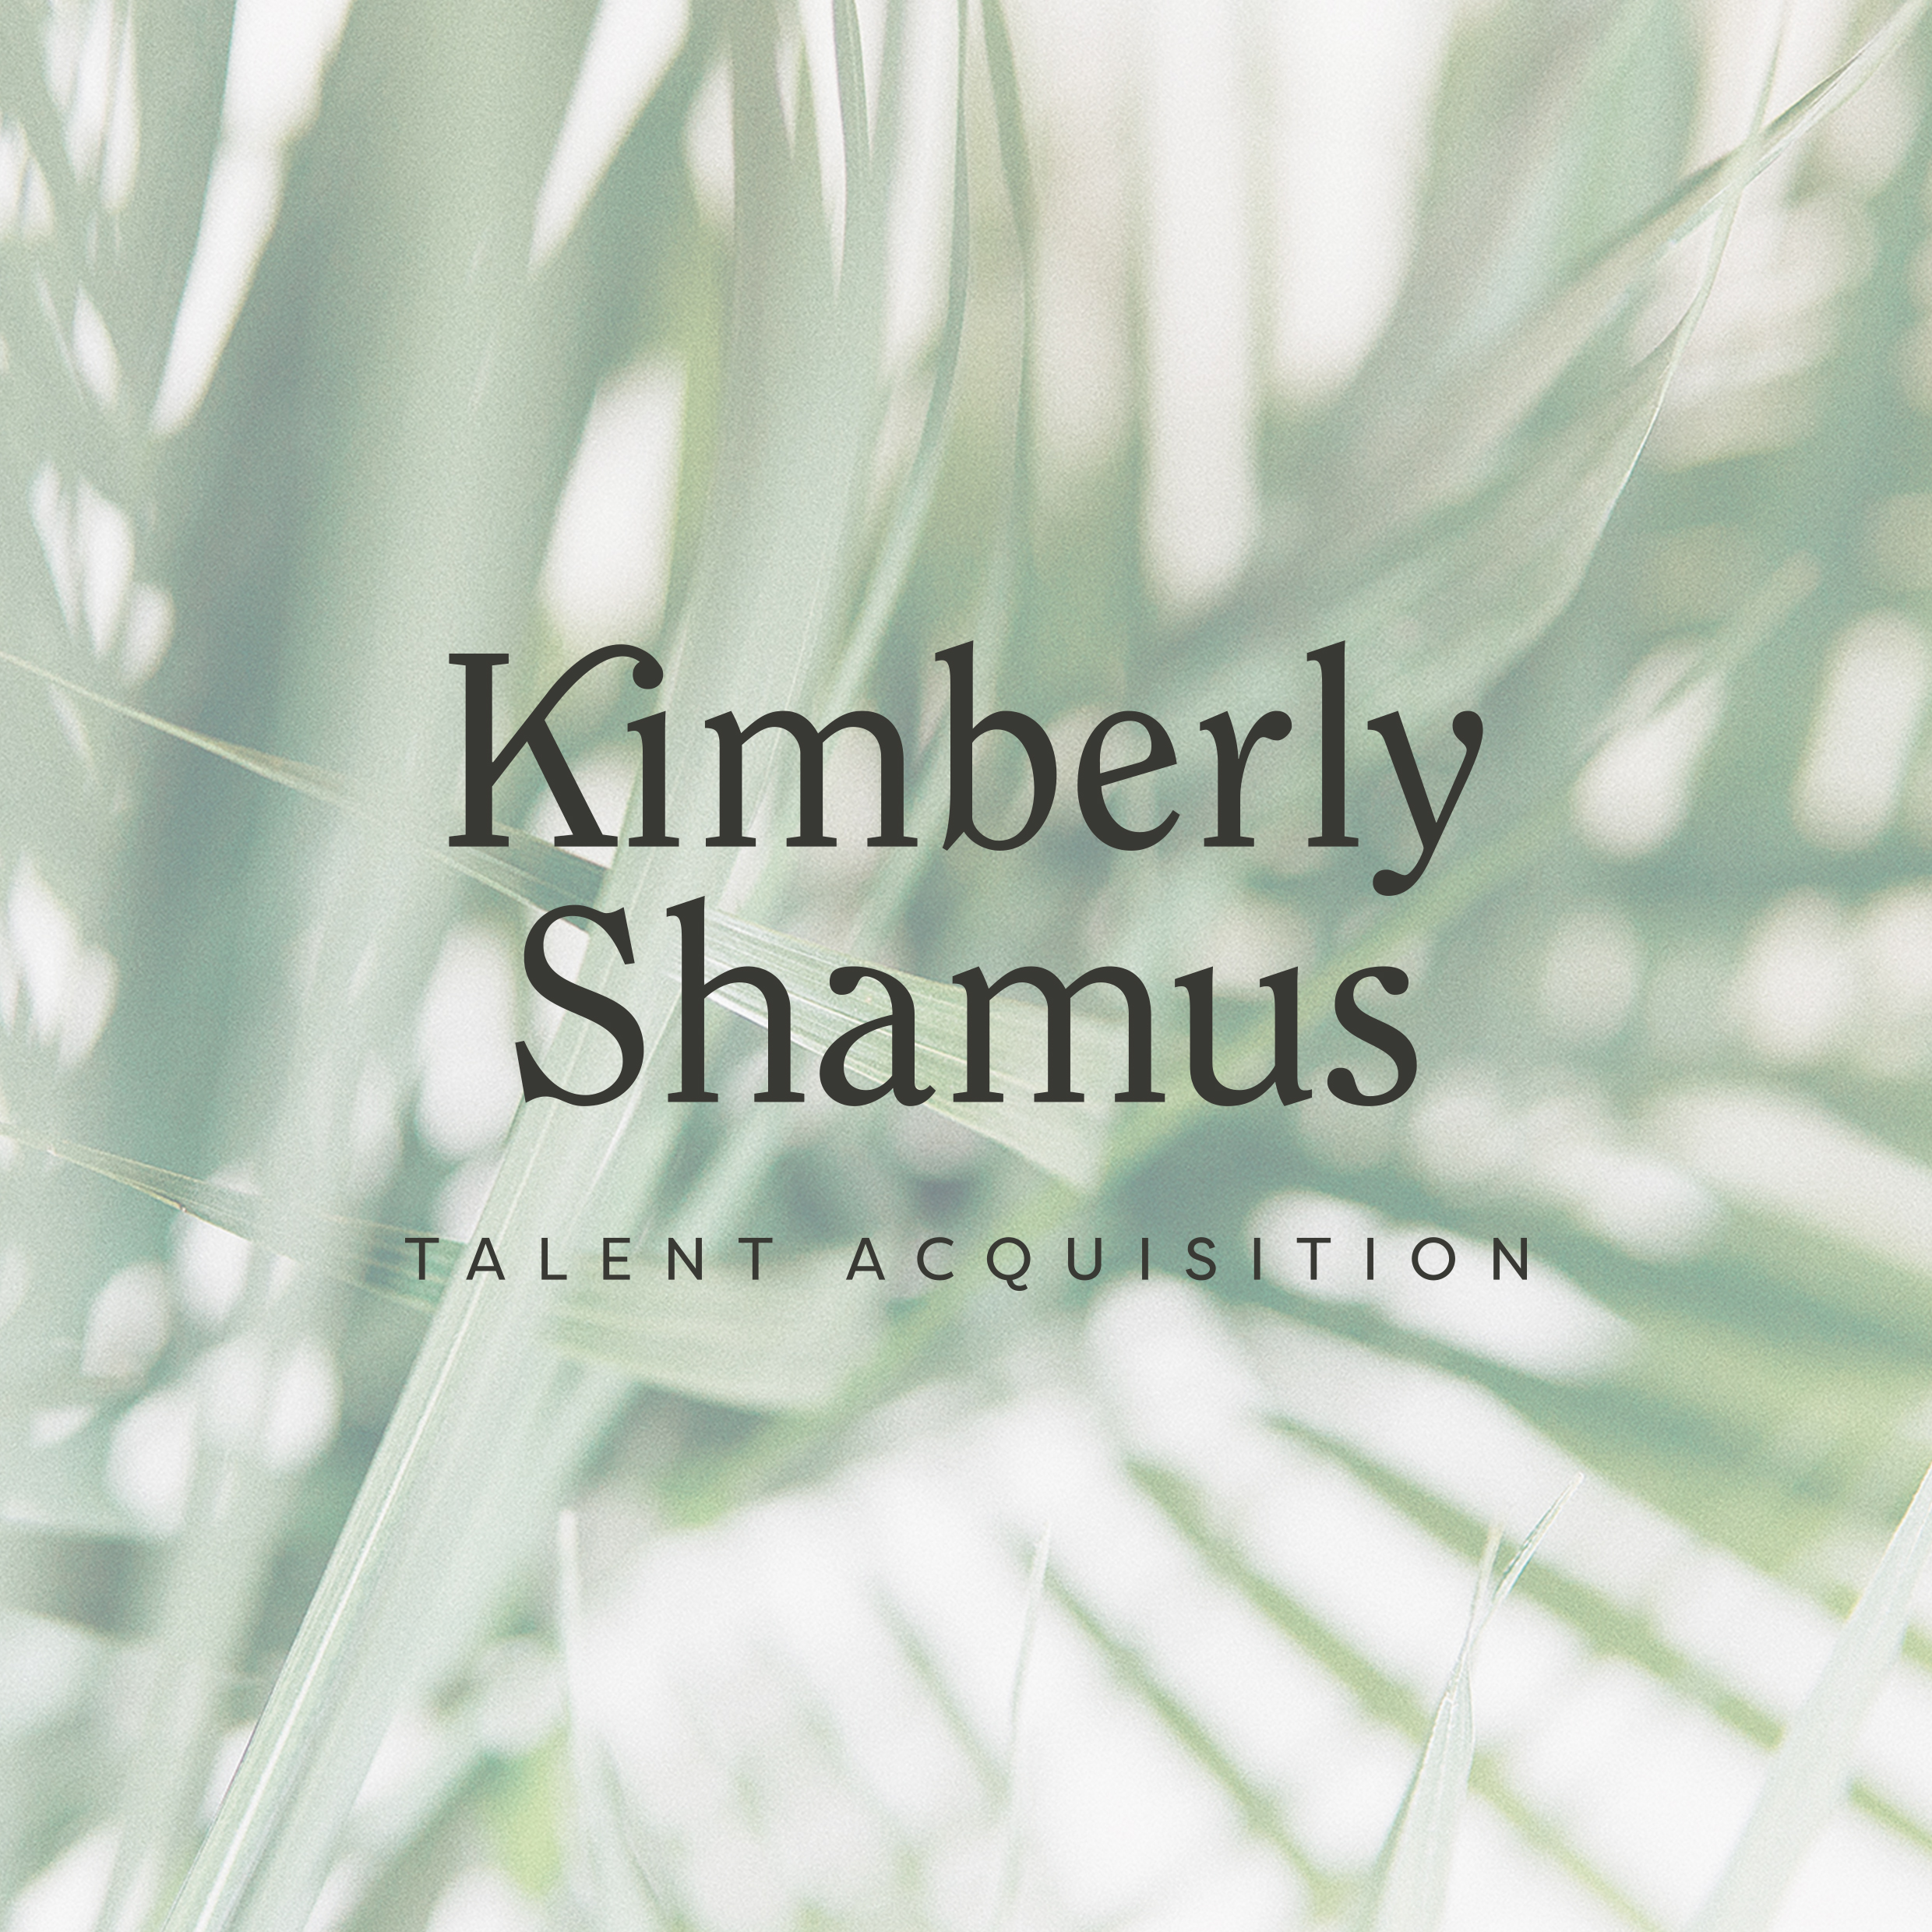 Kimberly Shamus - Brand & Website Design